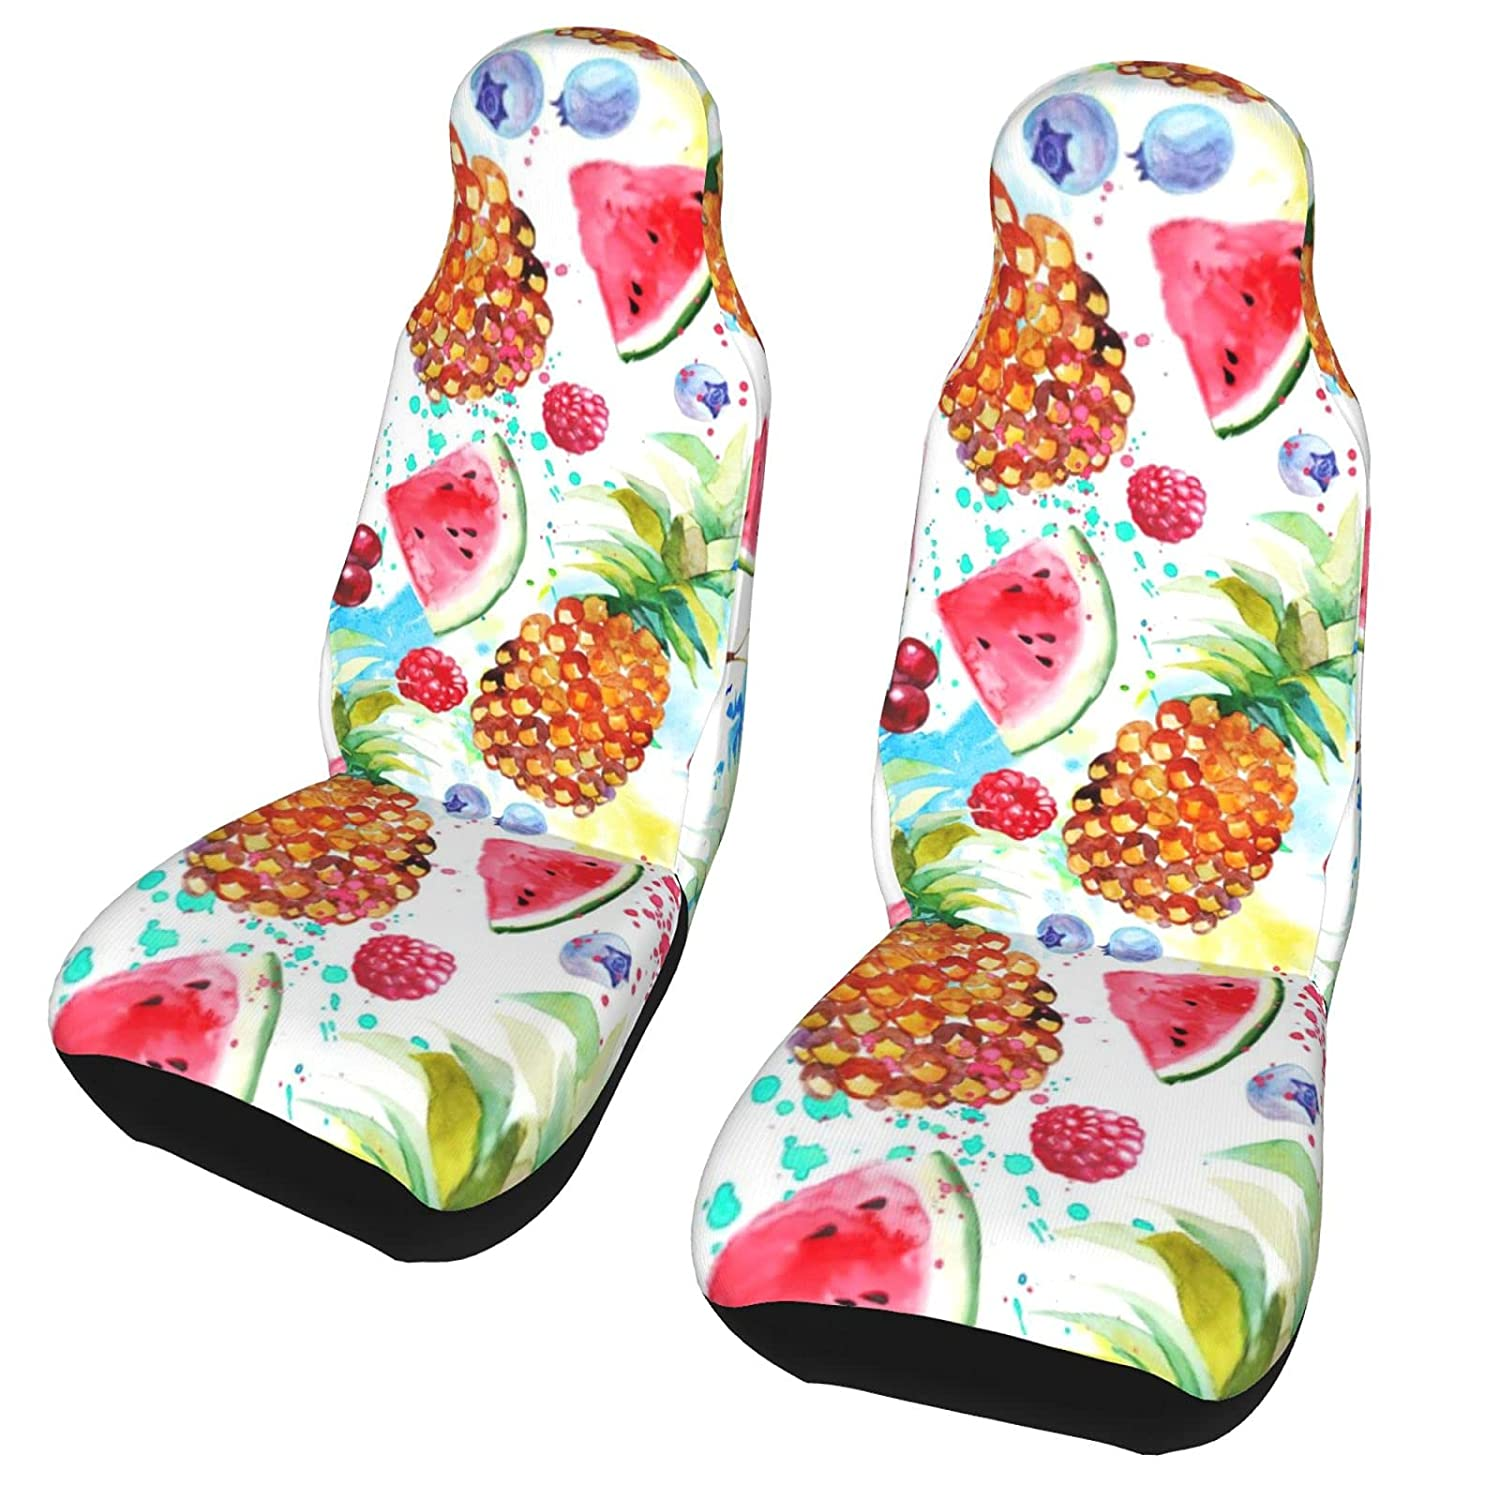 Our shop OFFers the best service AXDF Watercolor Flowers and Fruits Car seat Protective Doodles online shop C